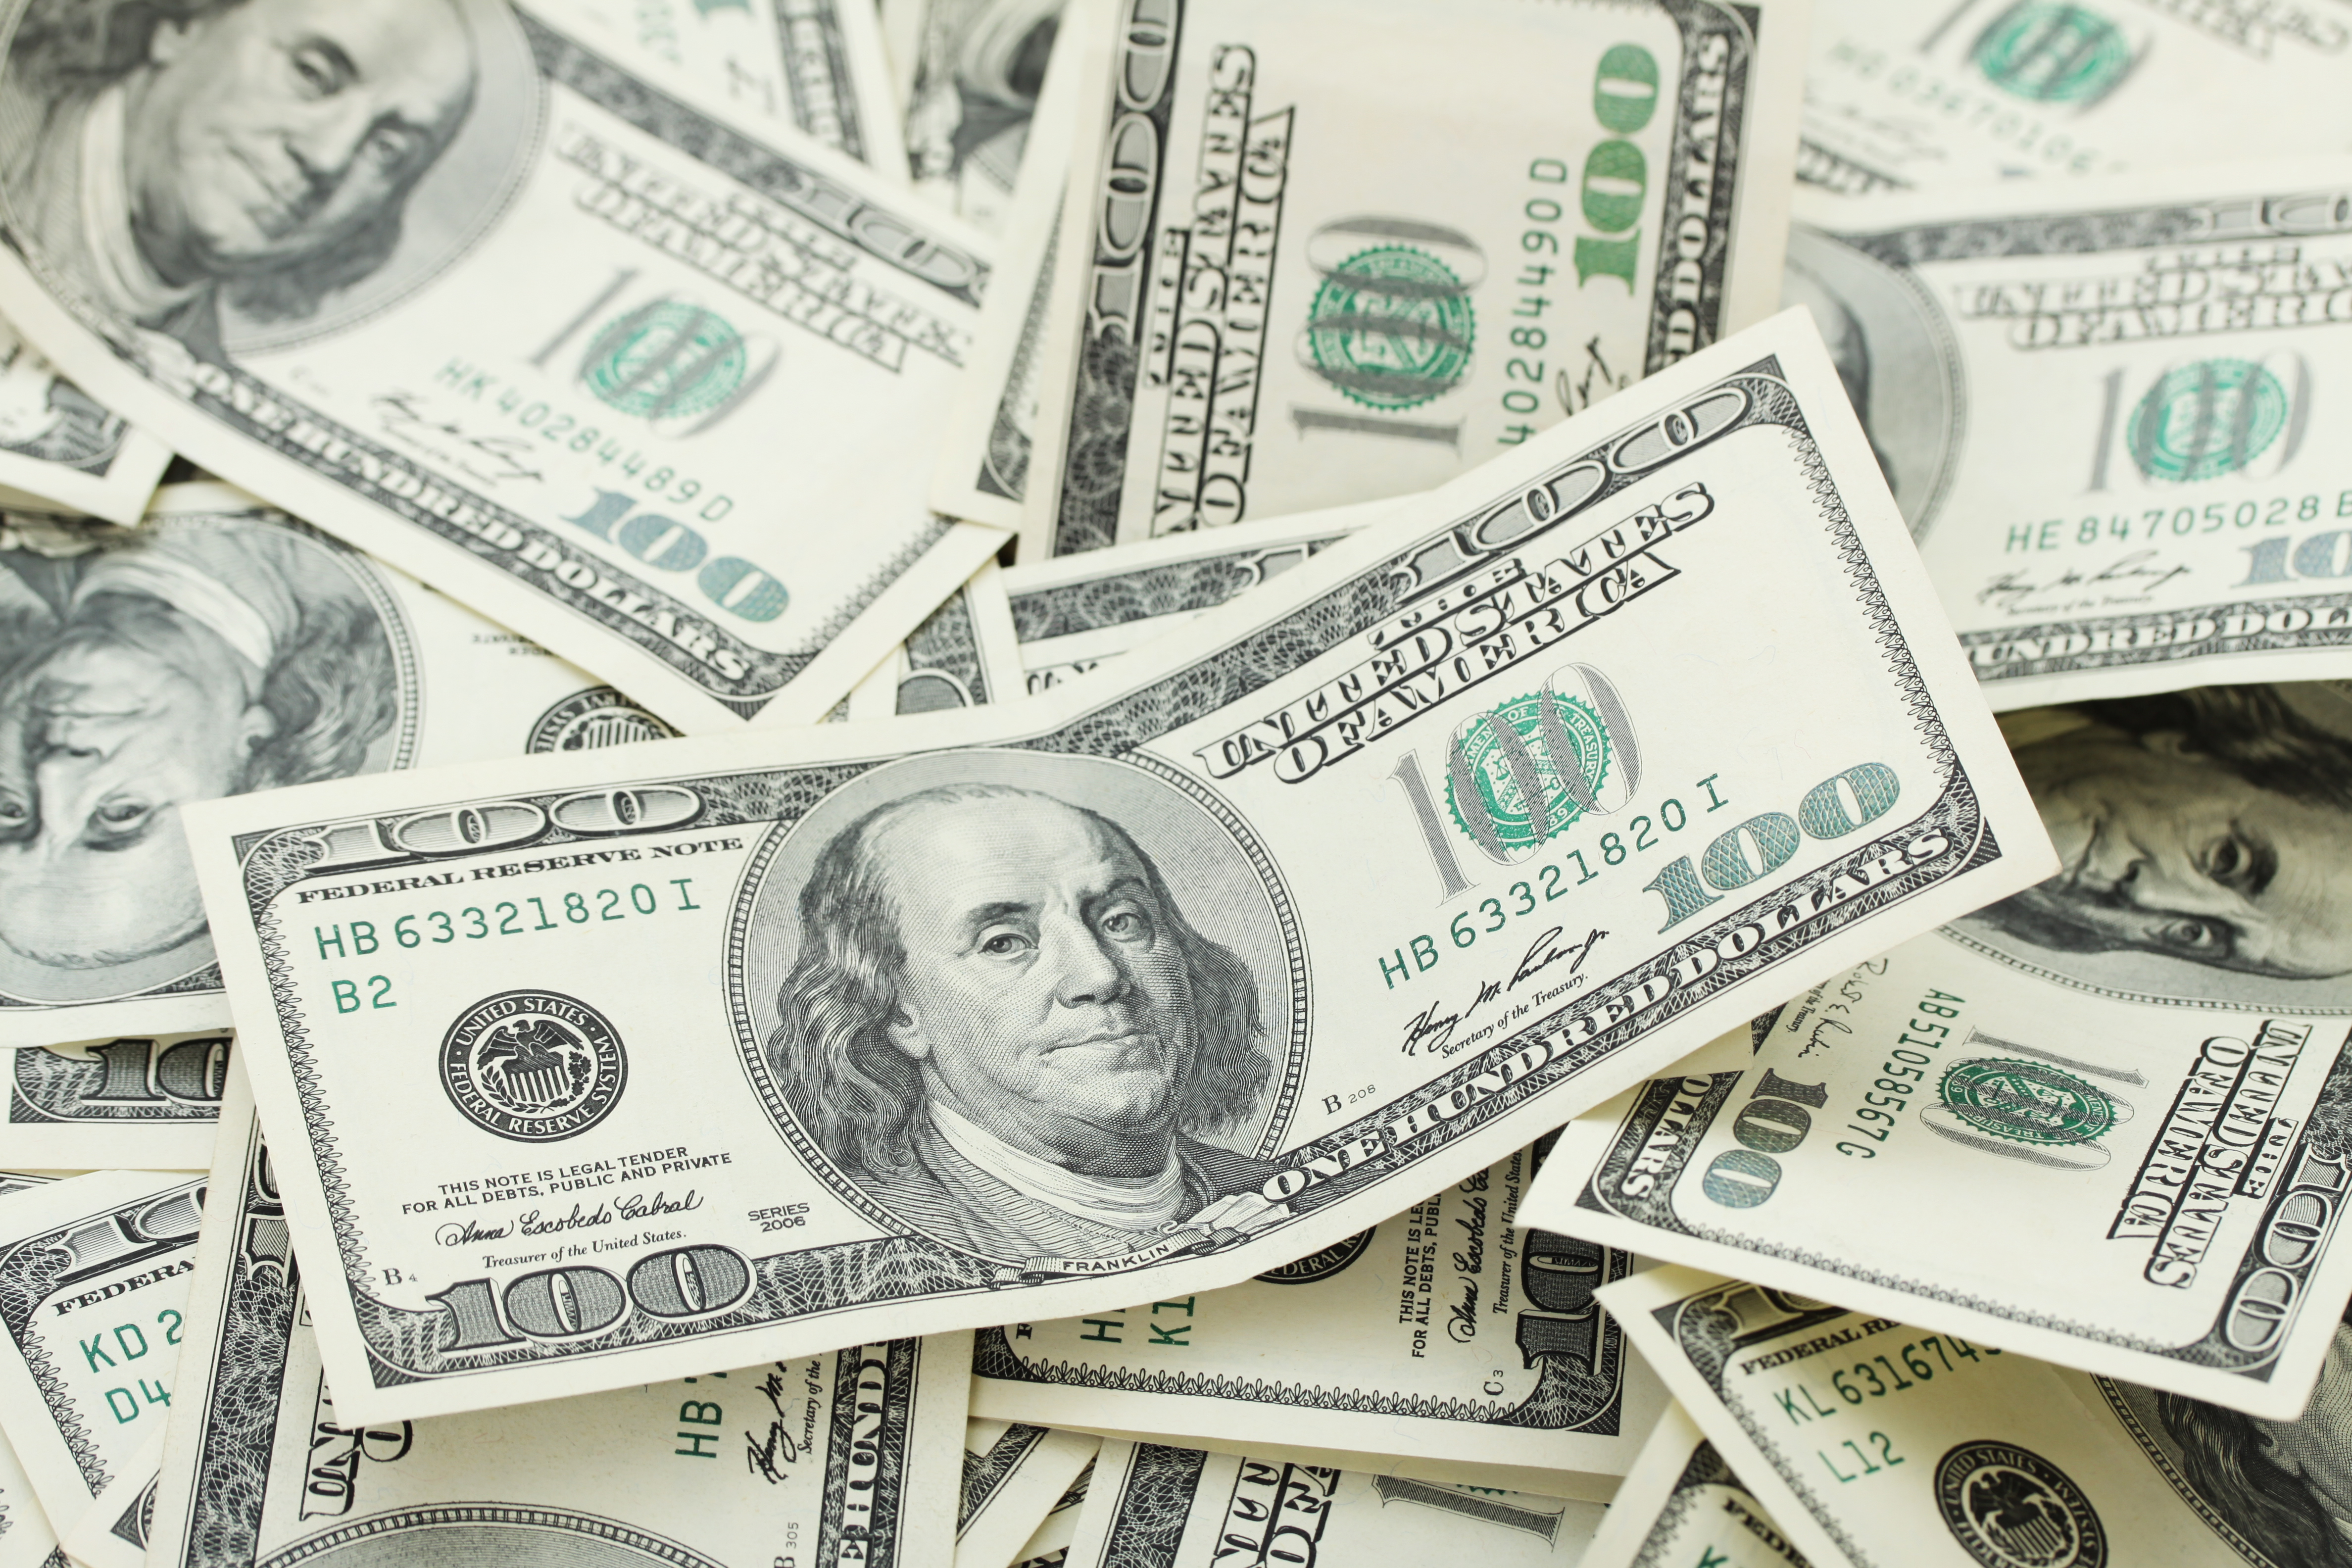 Pictured is money. SHUTTERSTOCK/ evka119